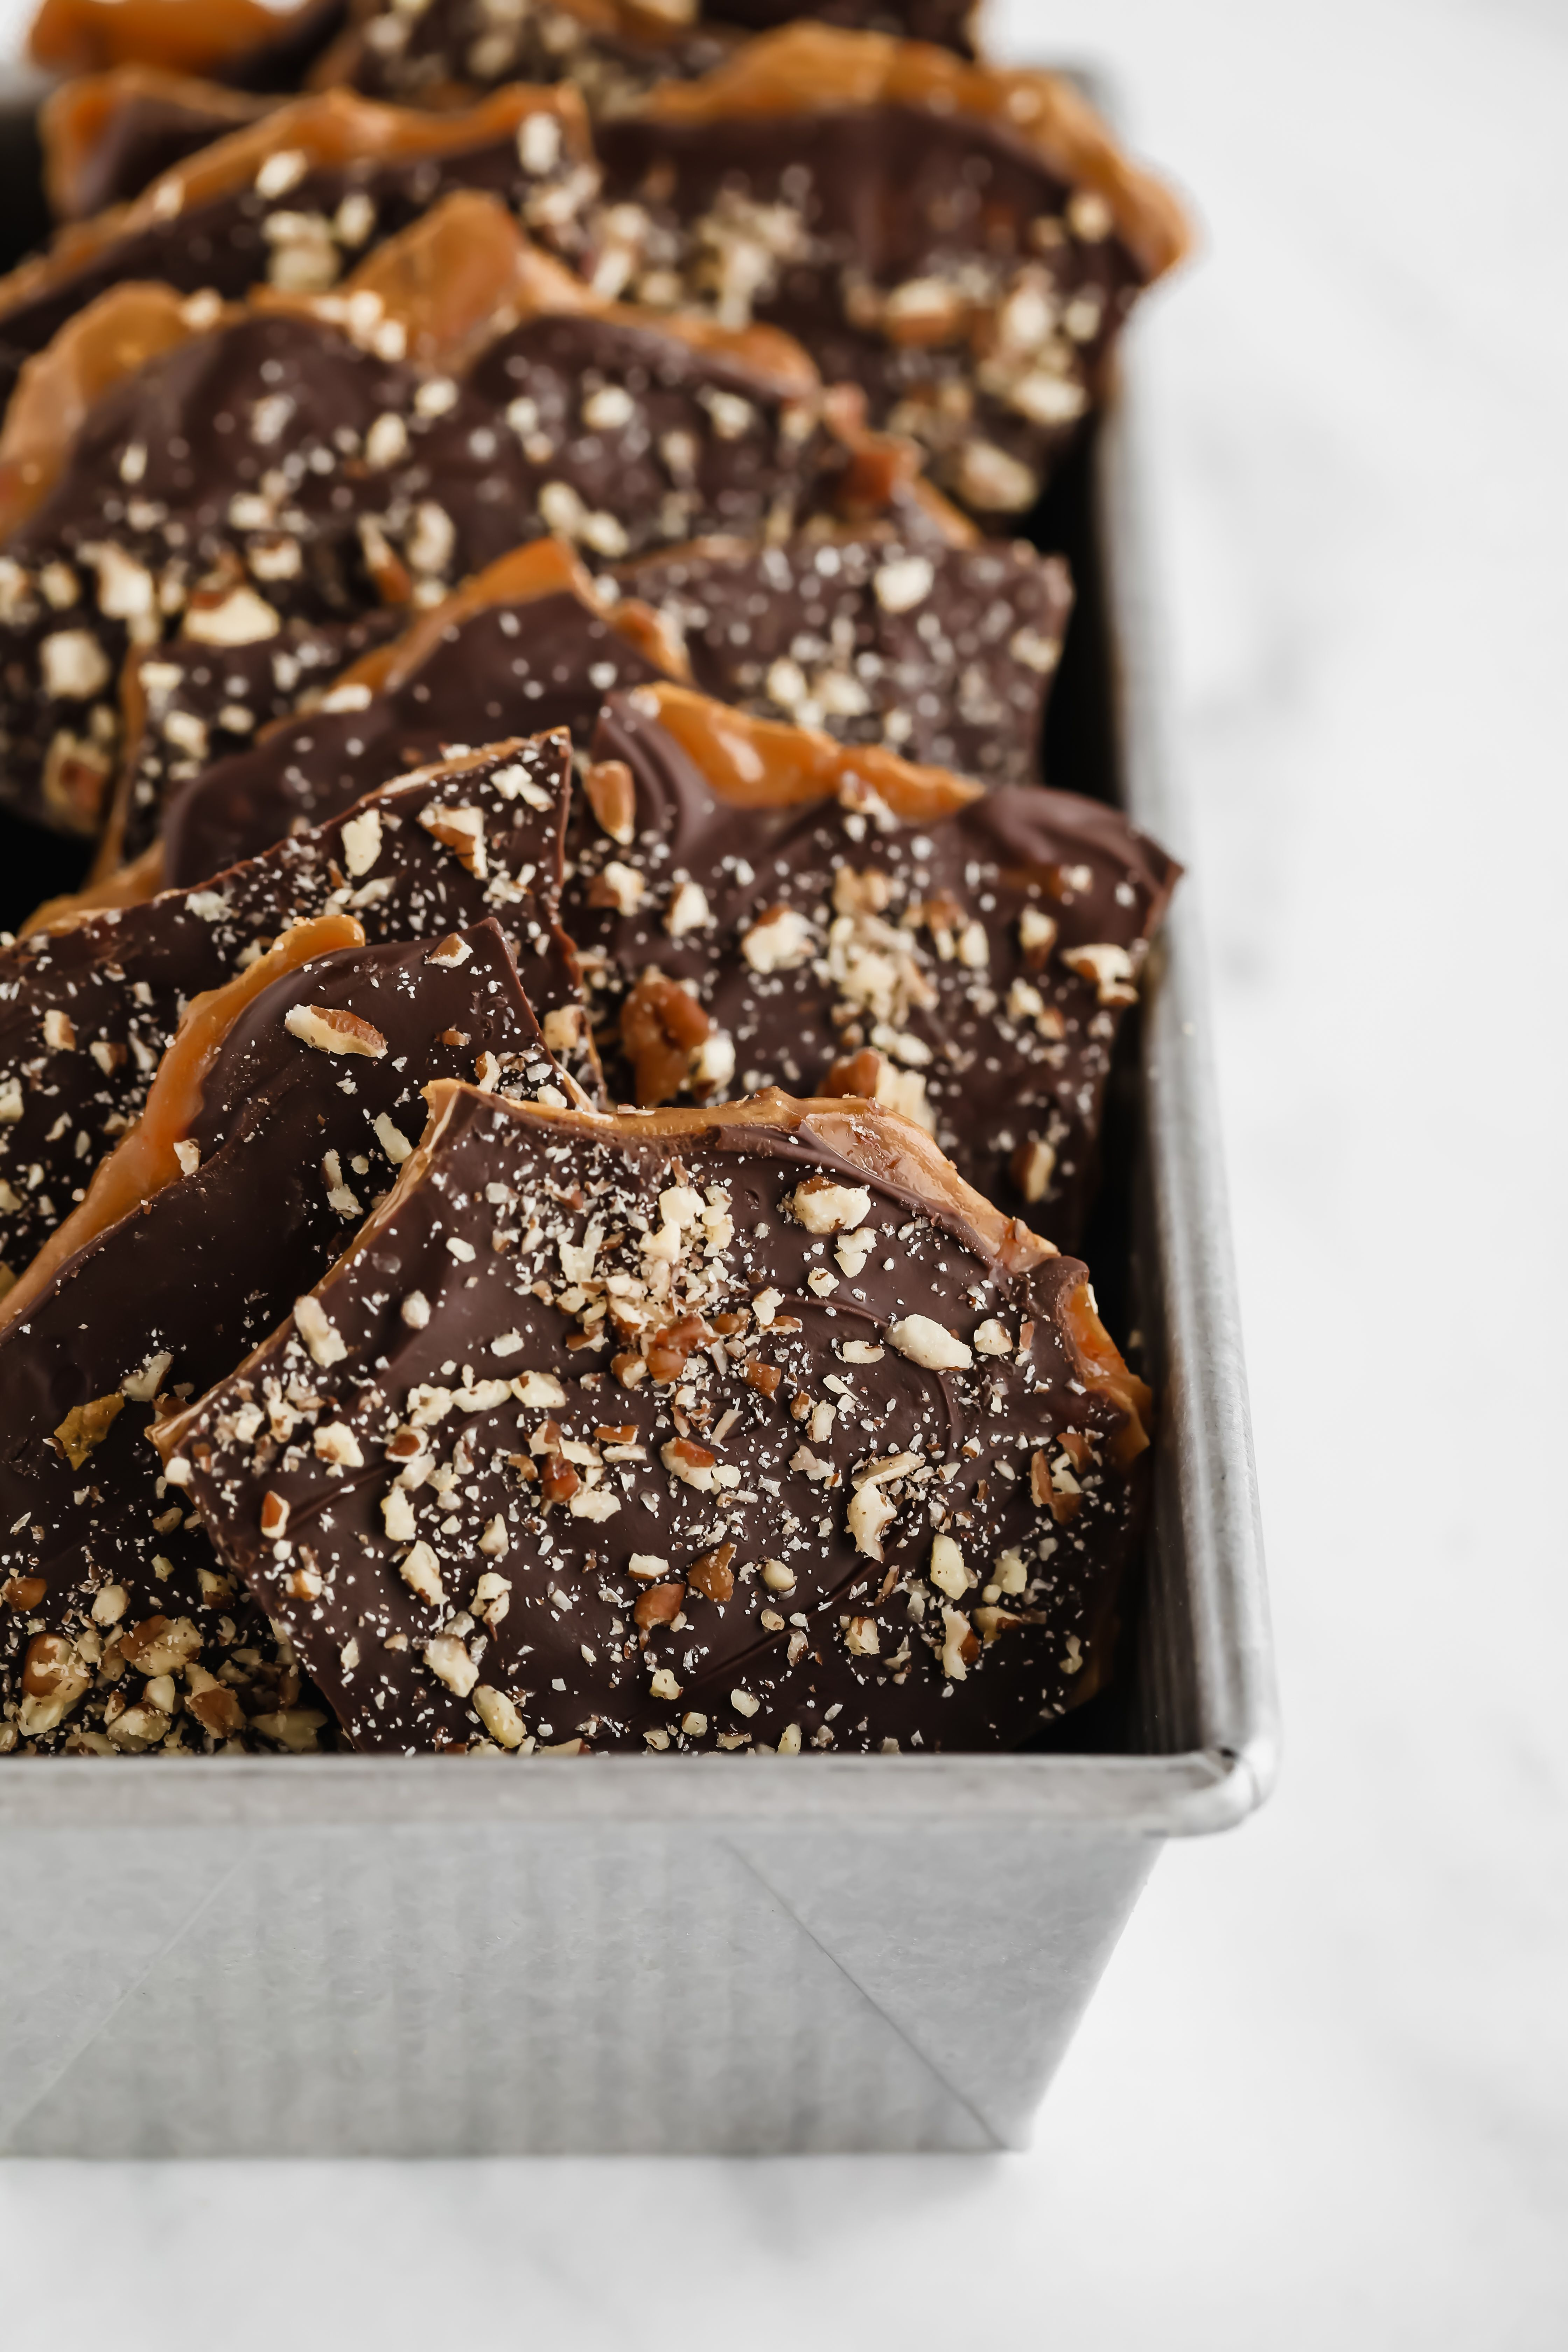 Toffee Dark Chocolate Bark with Pecan